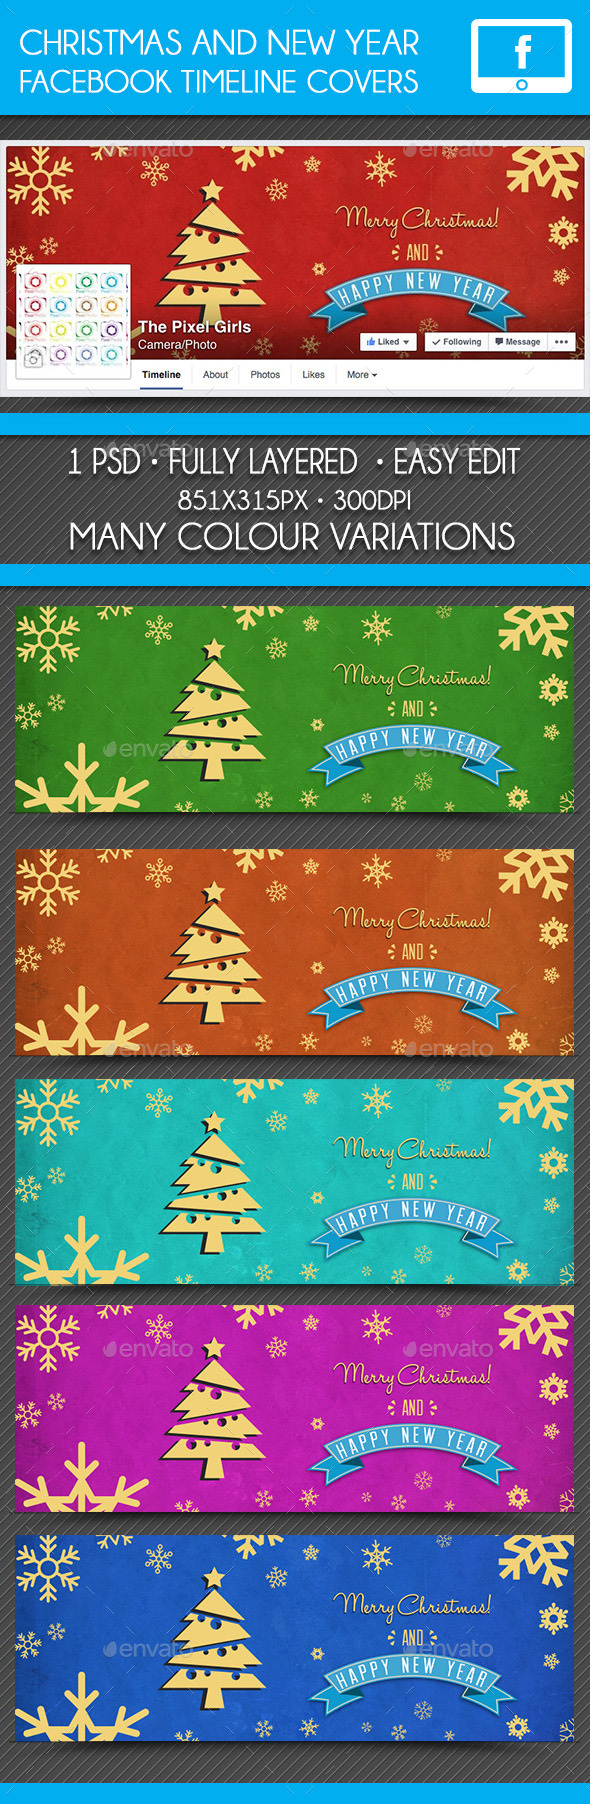 Christmas & New Year Facebook Timeline Cover